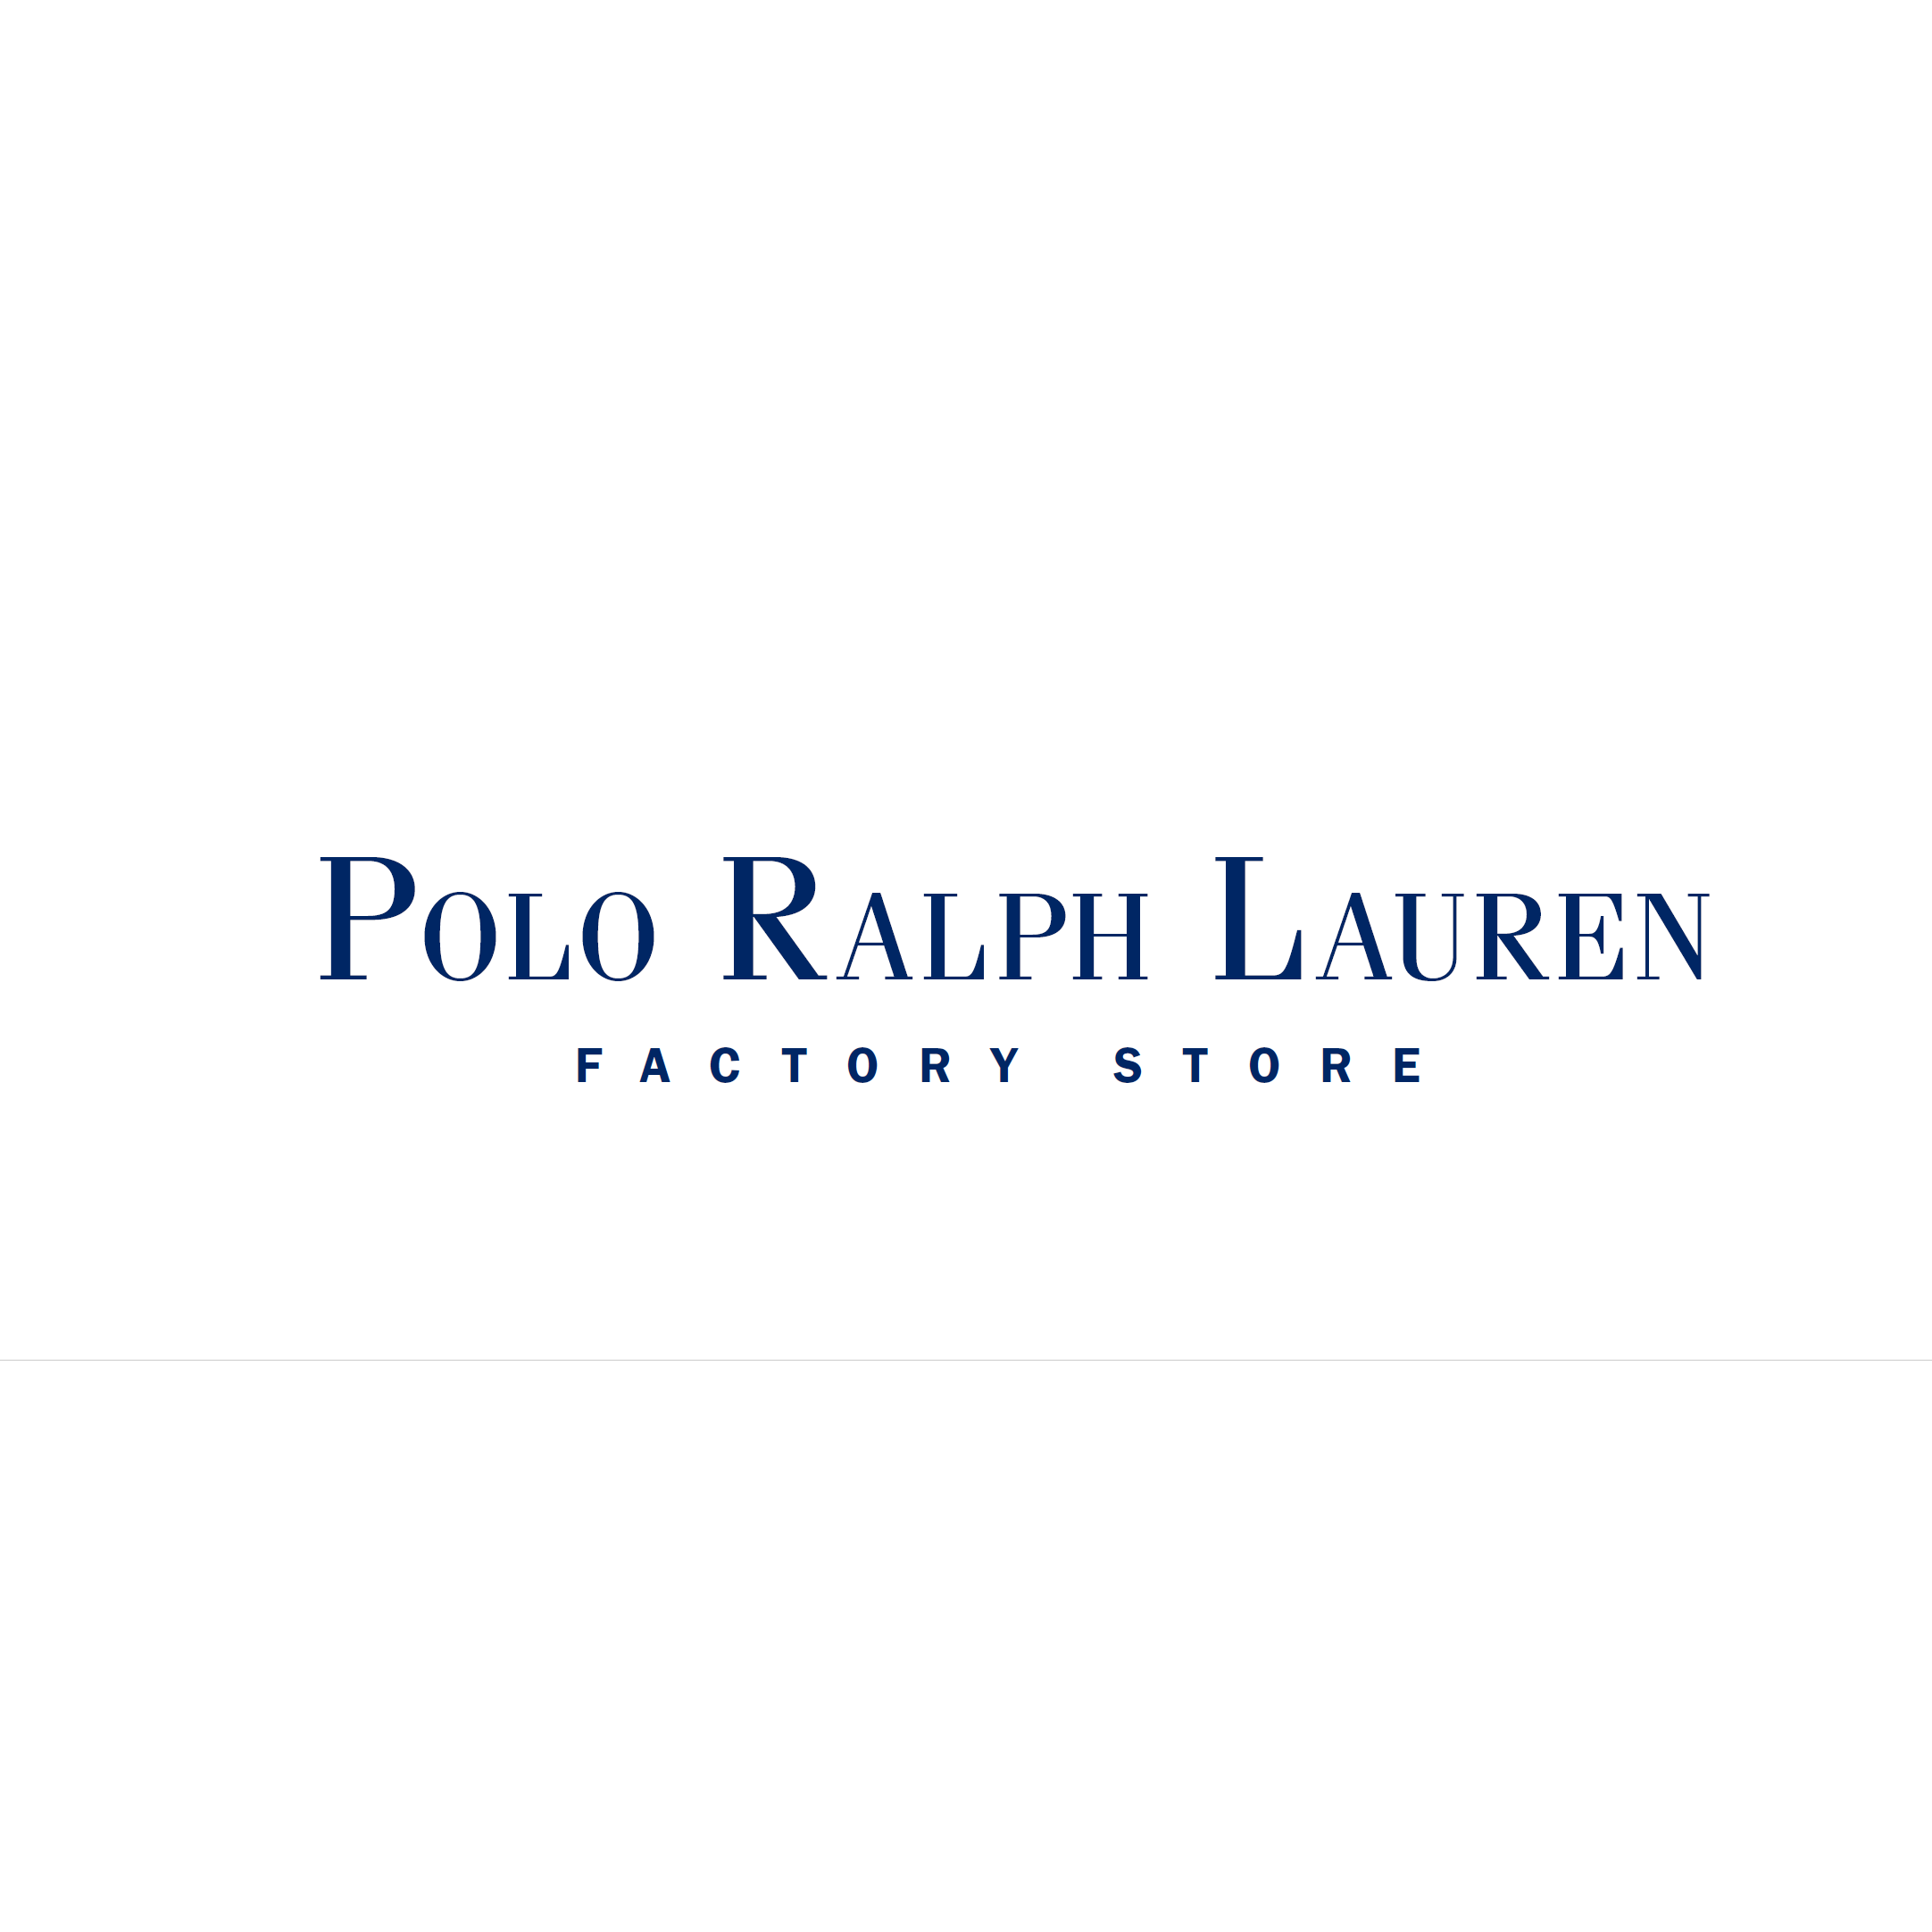 Polo Ralph Lauren Factory Store - Flemington, NJ - Apparel Stores